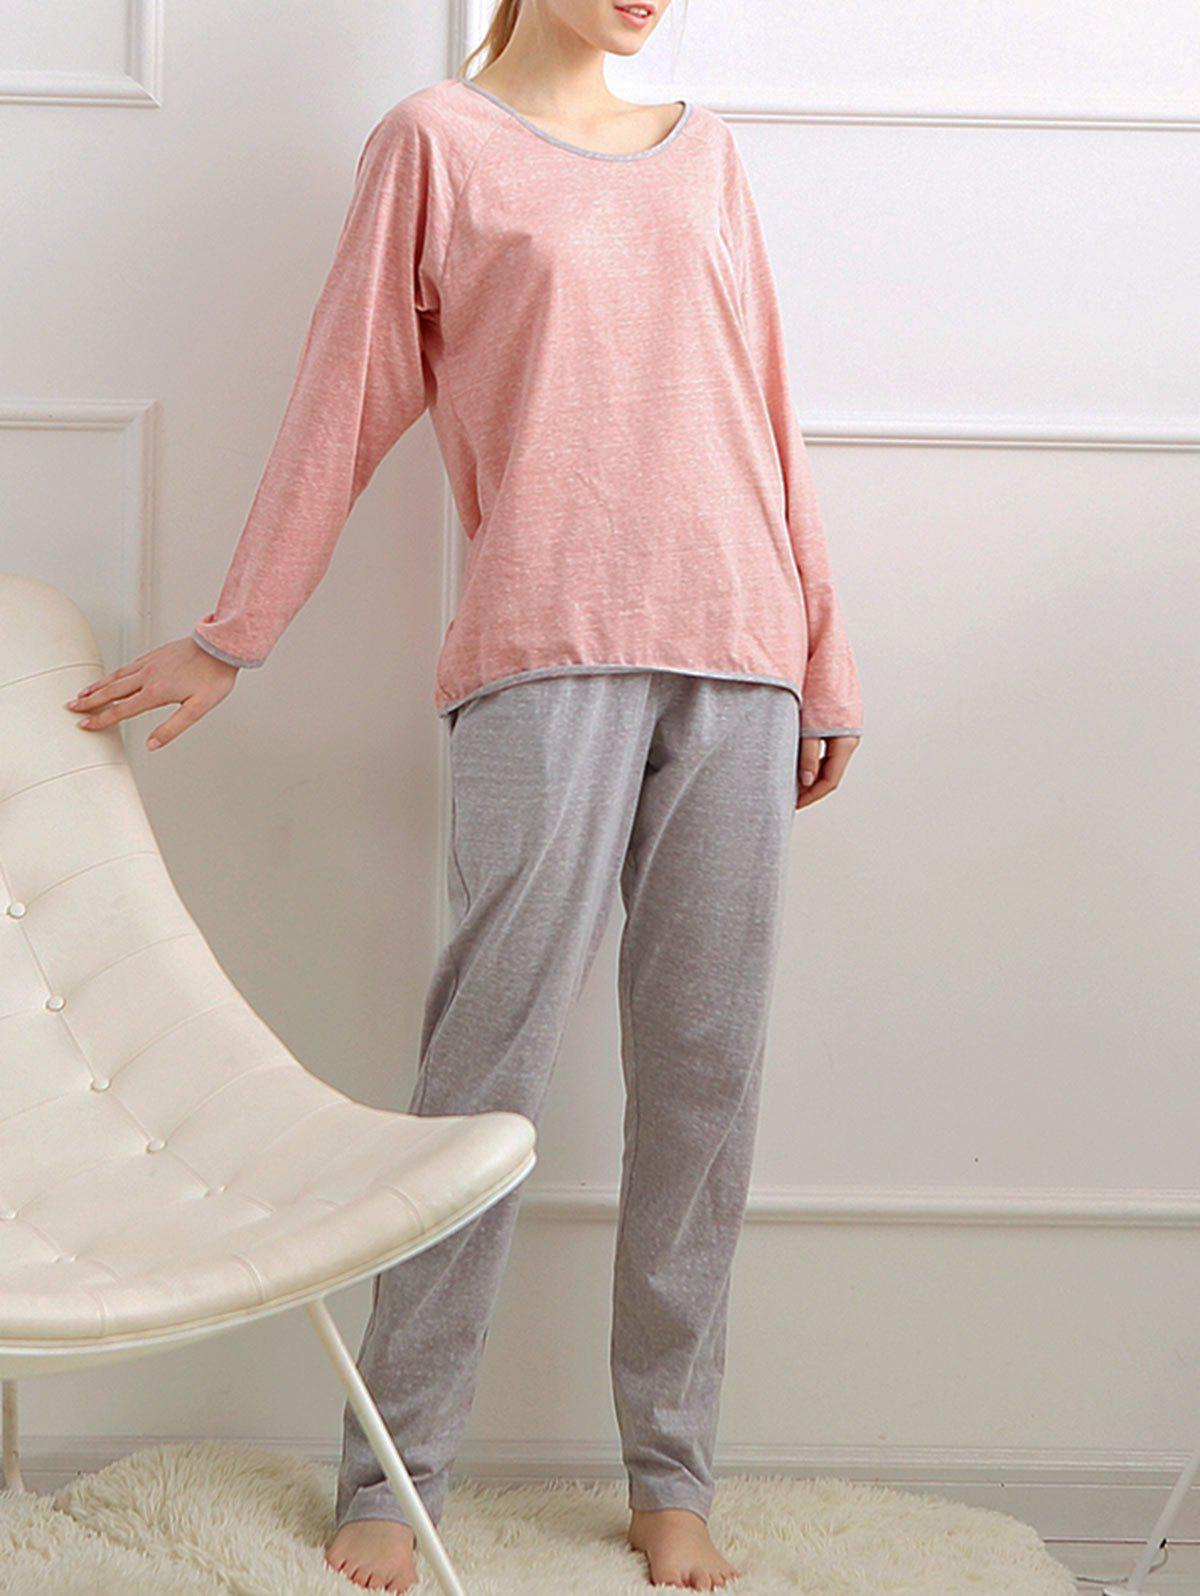 Long Sleeves Pajamas T-shirt and Pants - ORANGEPINK L